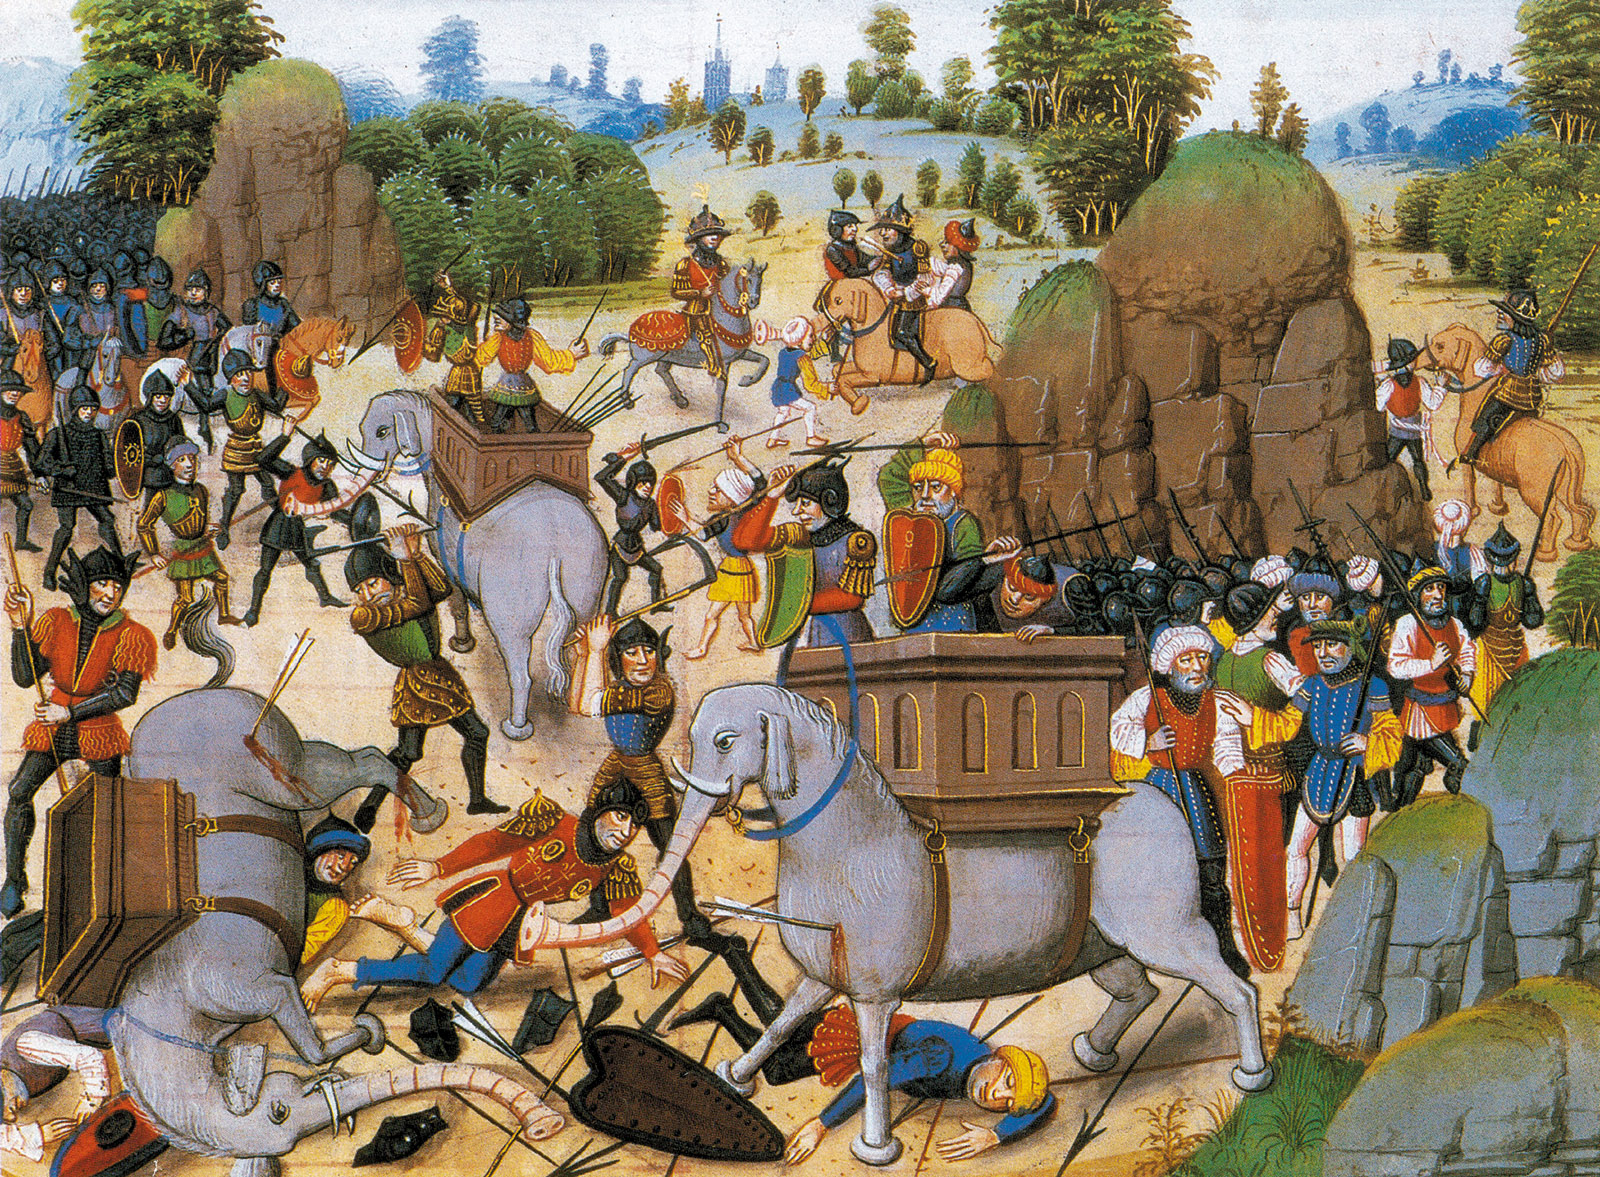 The Battle of the Hydaspes between the troops of Alexander the Great and the Indian king Porus